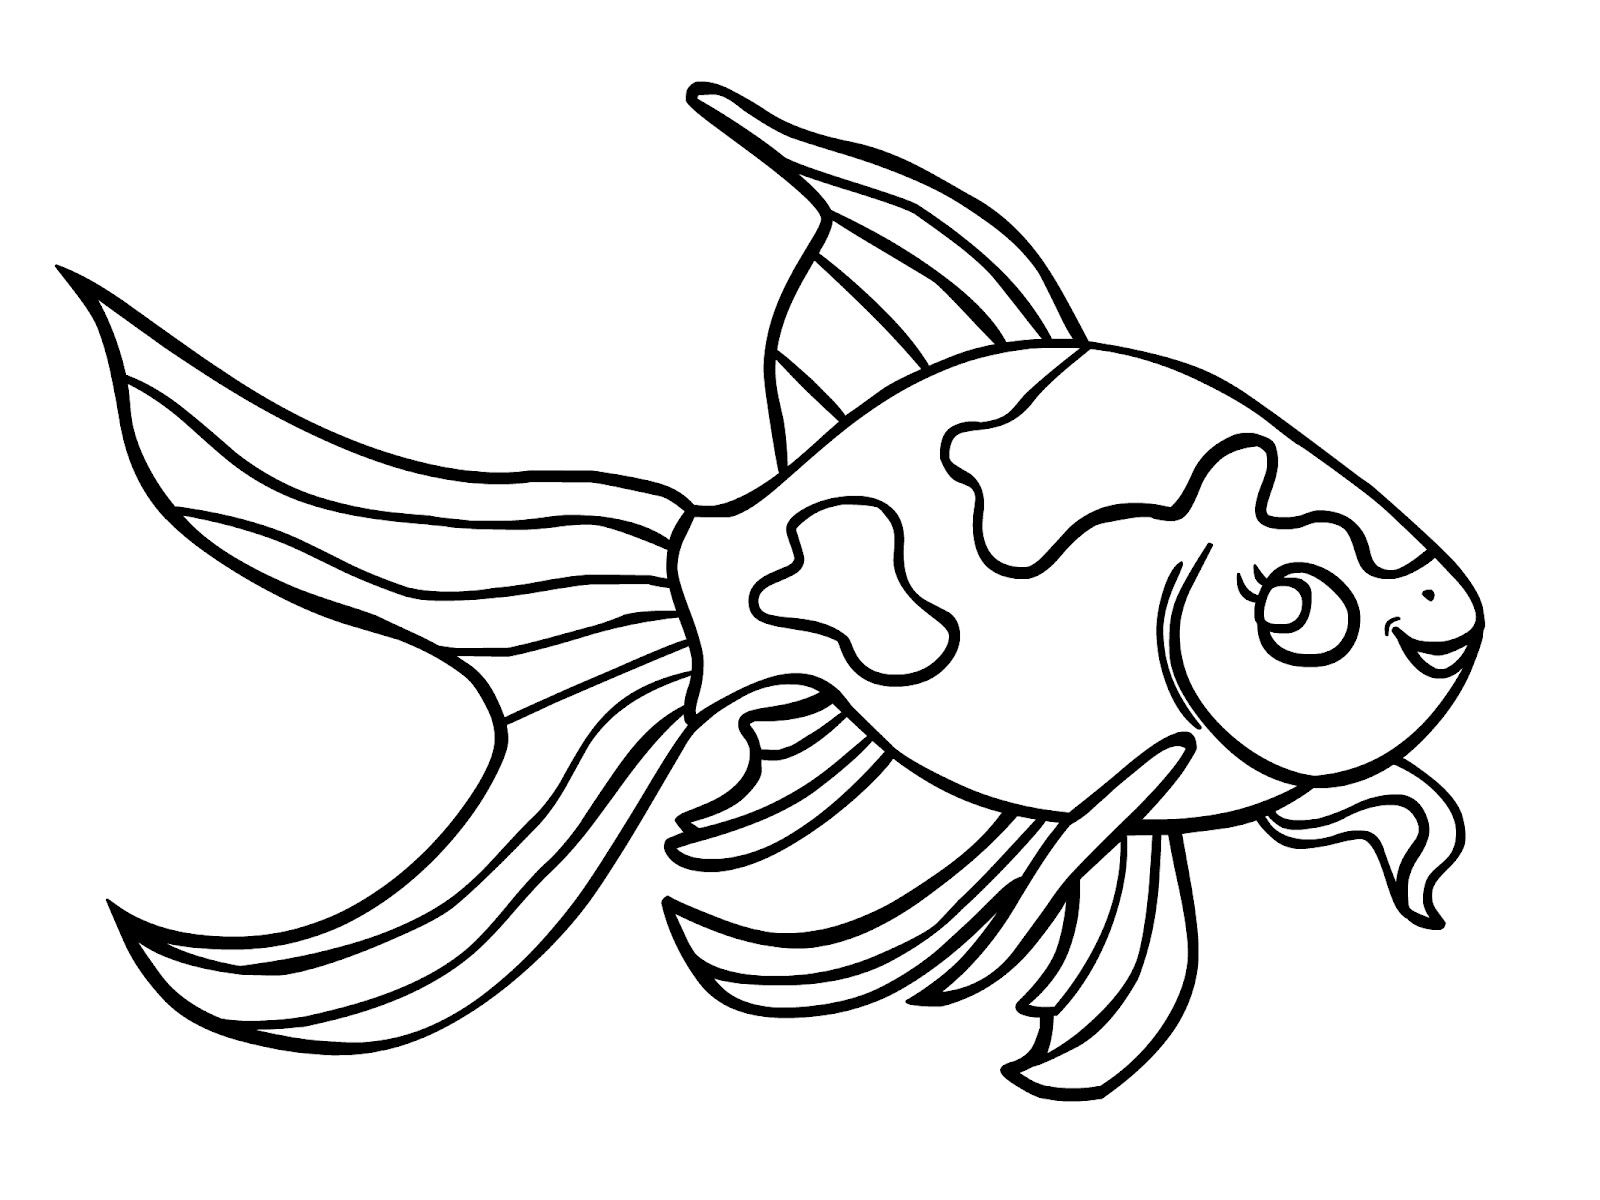 Free-Goldfish-Coloring-Pages.jpg 1,600×1,200 pixels | Coloring Pages ...